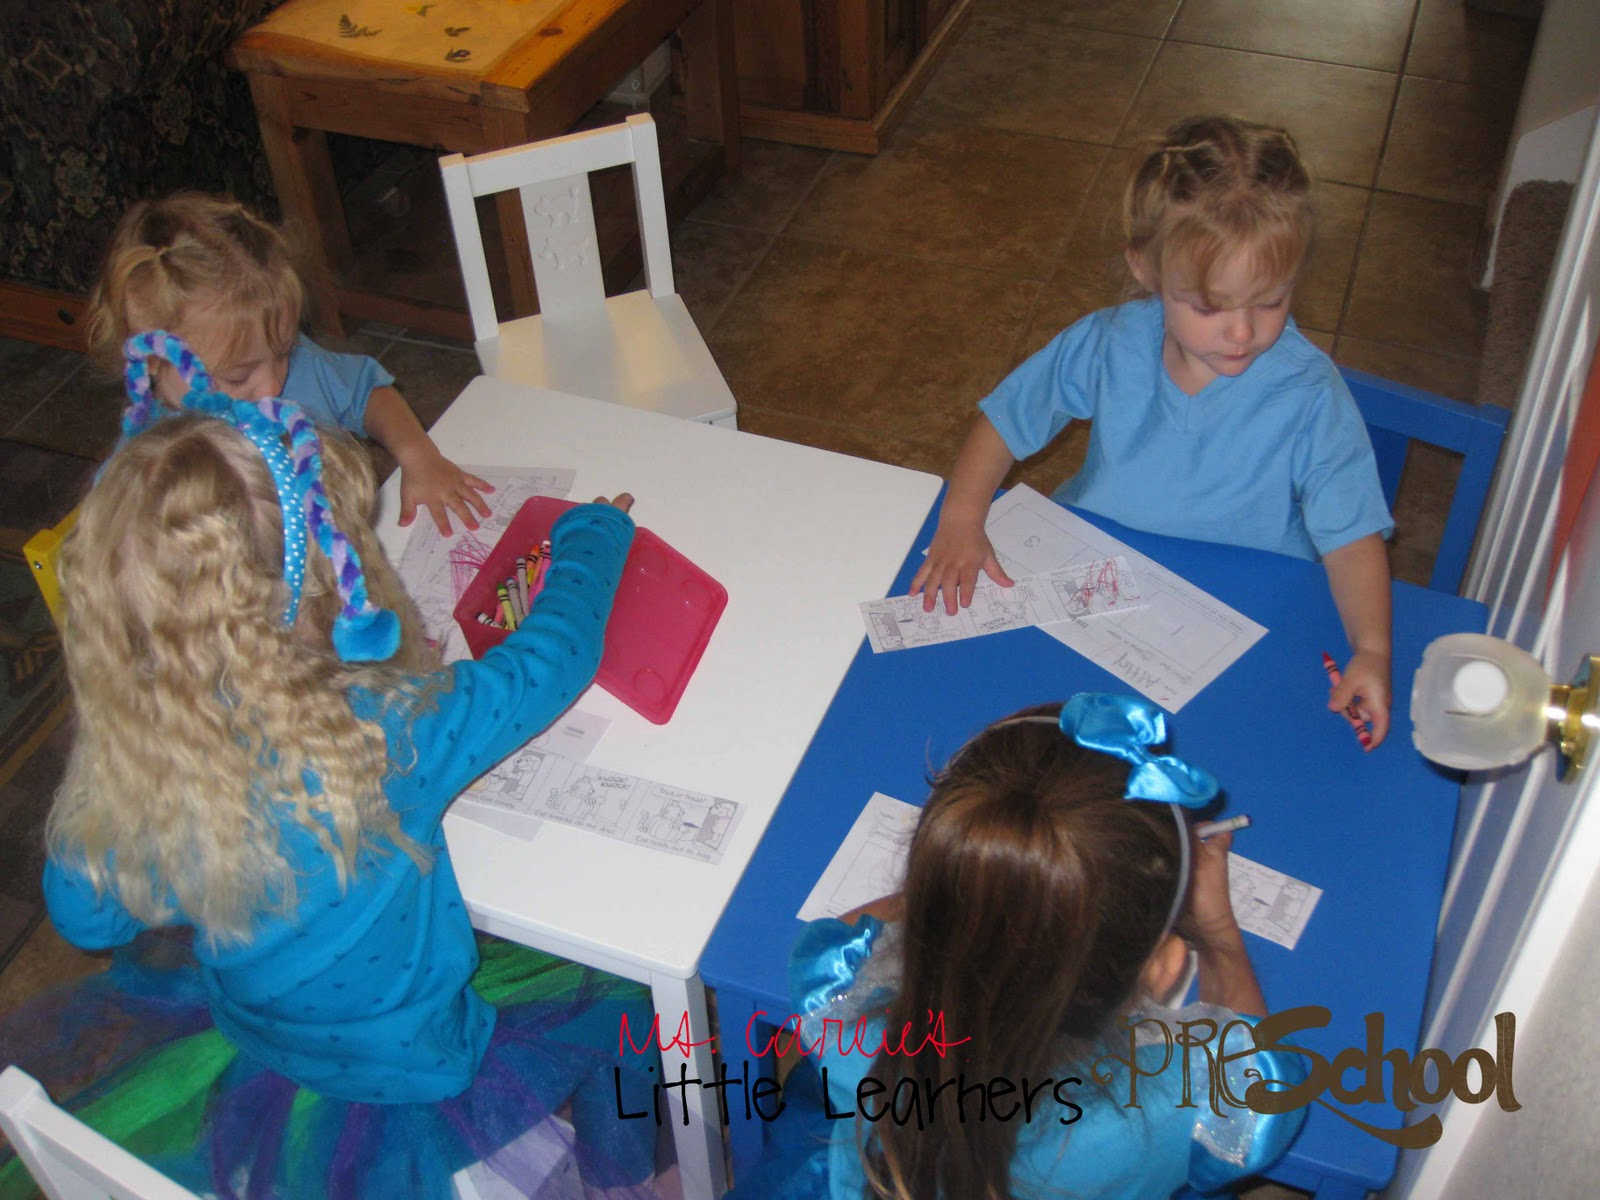 Ms Carlie S Little Learners Preschool October Week Four